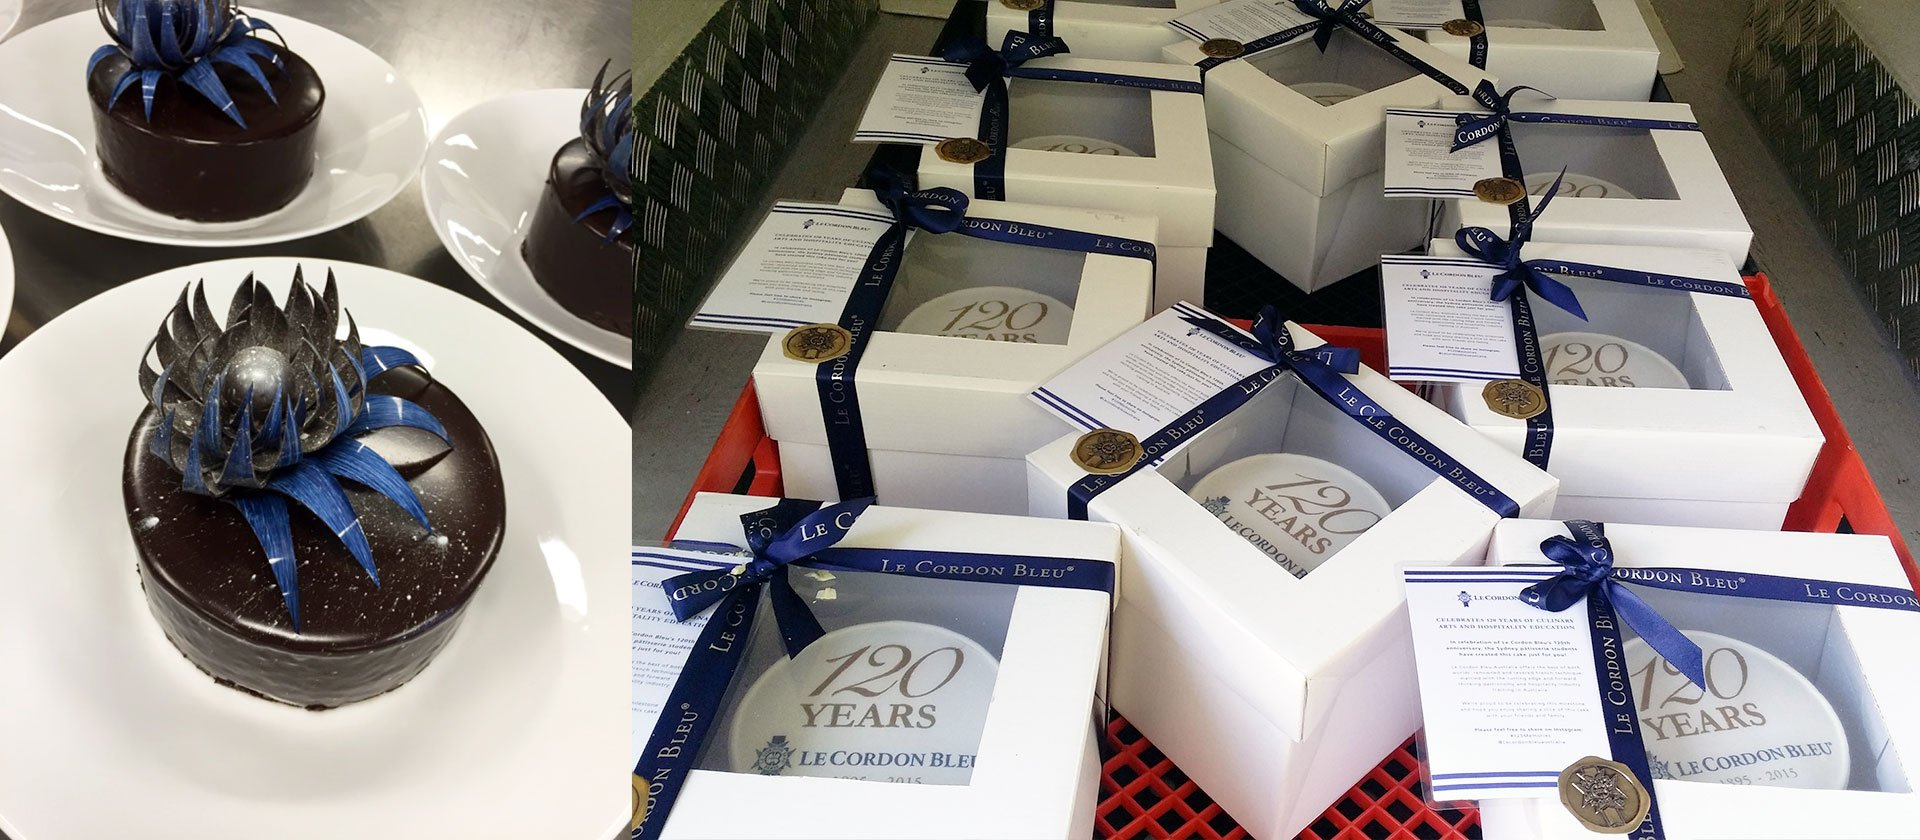 Sydney & Melbourne 120 Year Anniversary Commemorative Cakes